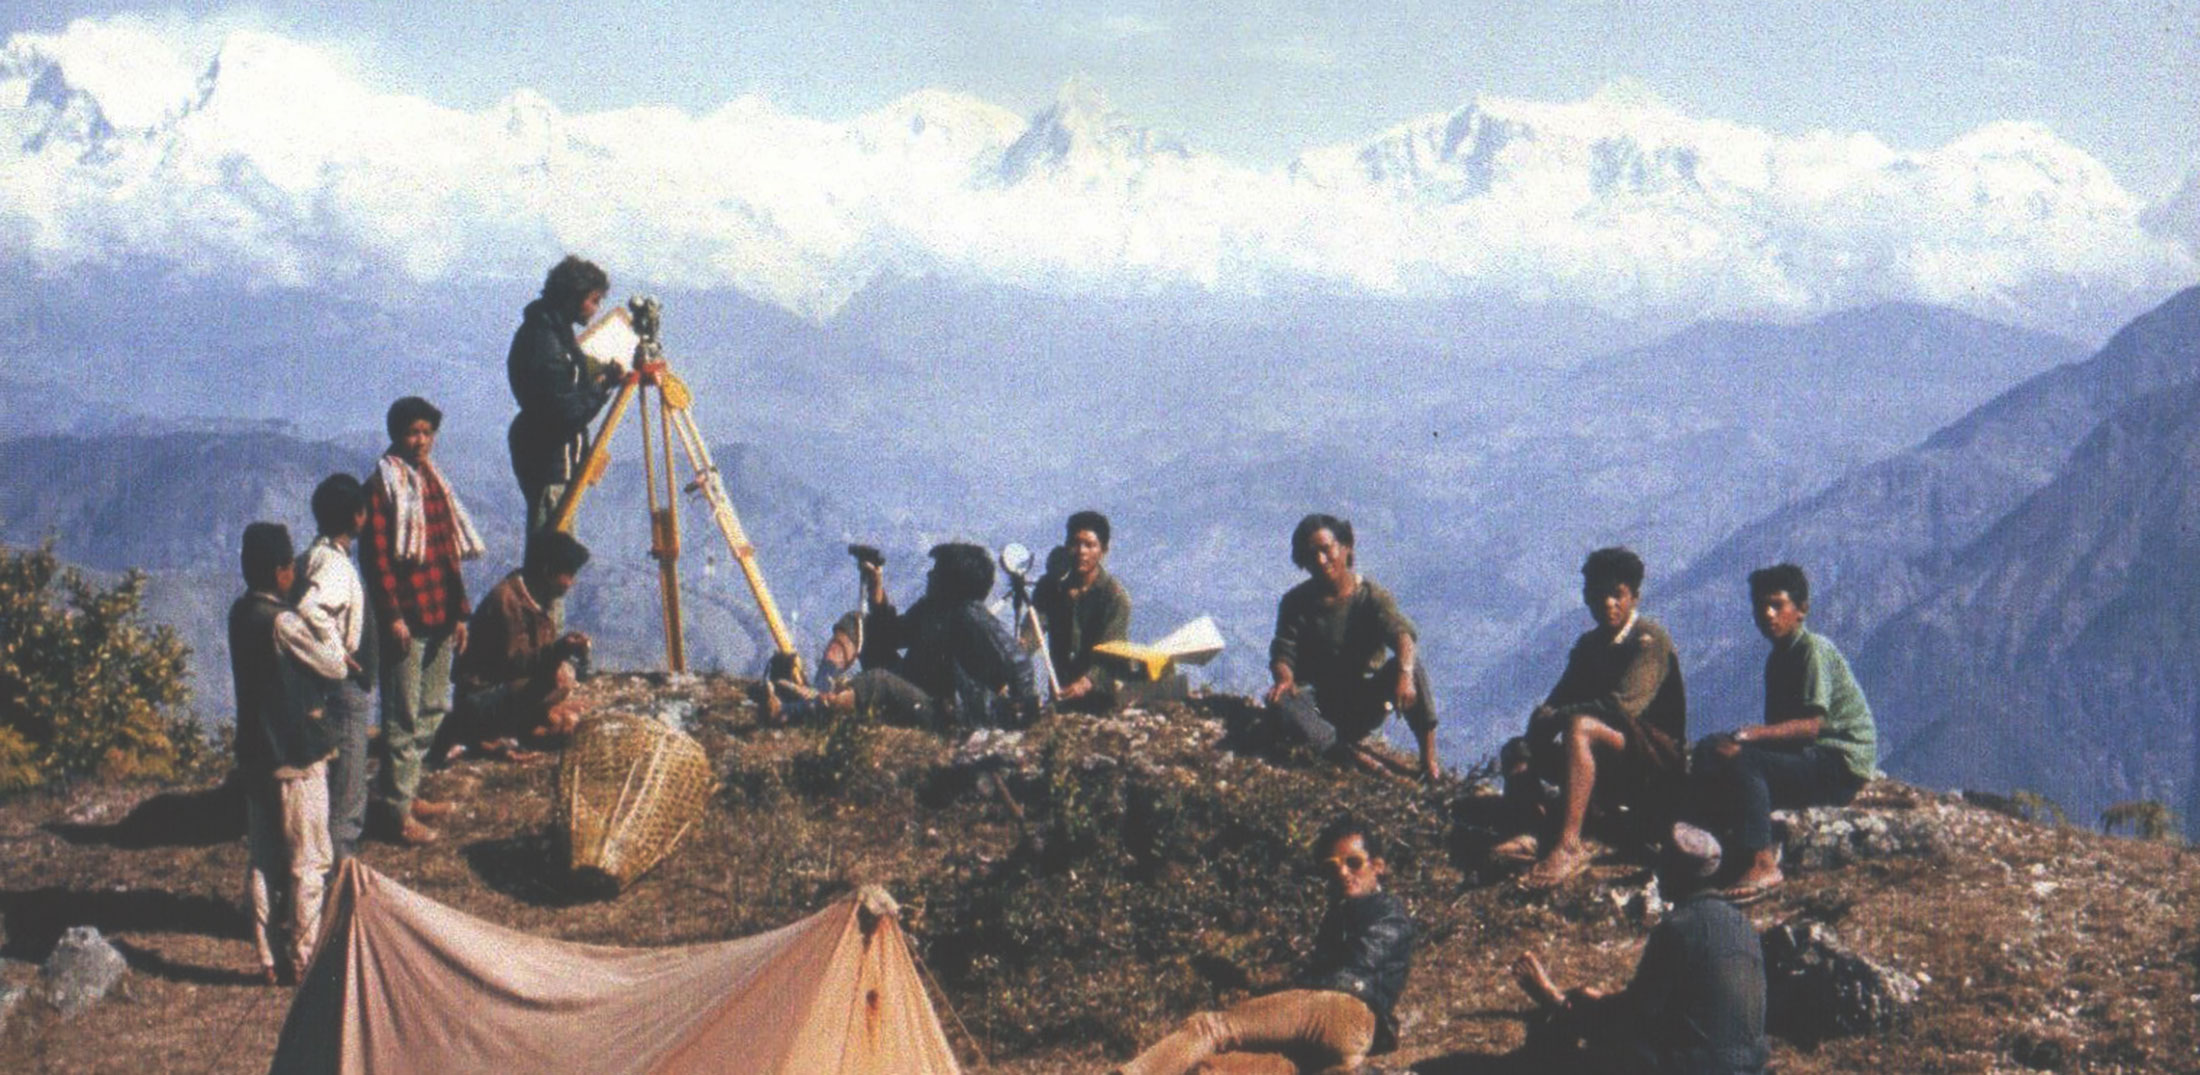 Surveying from Cooma to Nepal and beyond